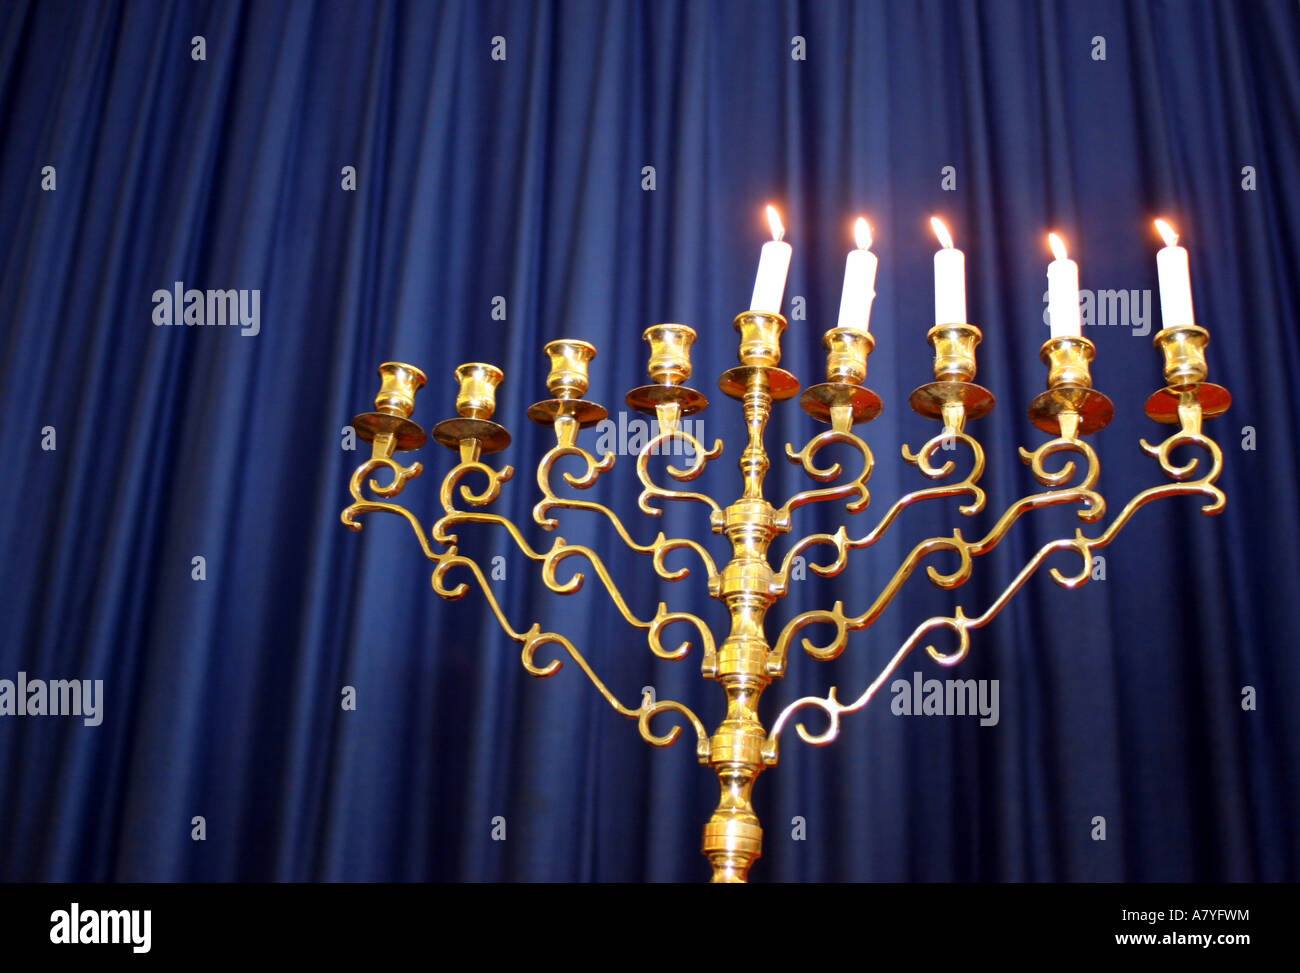 Partially lit Hanukkah menorah against a blue curtain backdrop - Stock Image